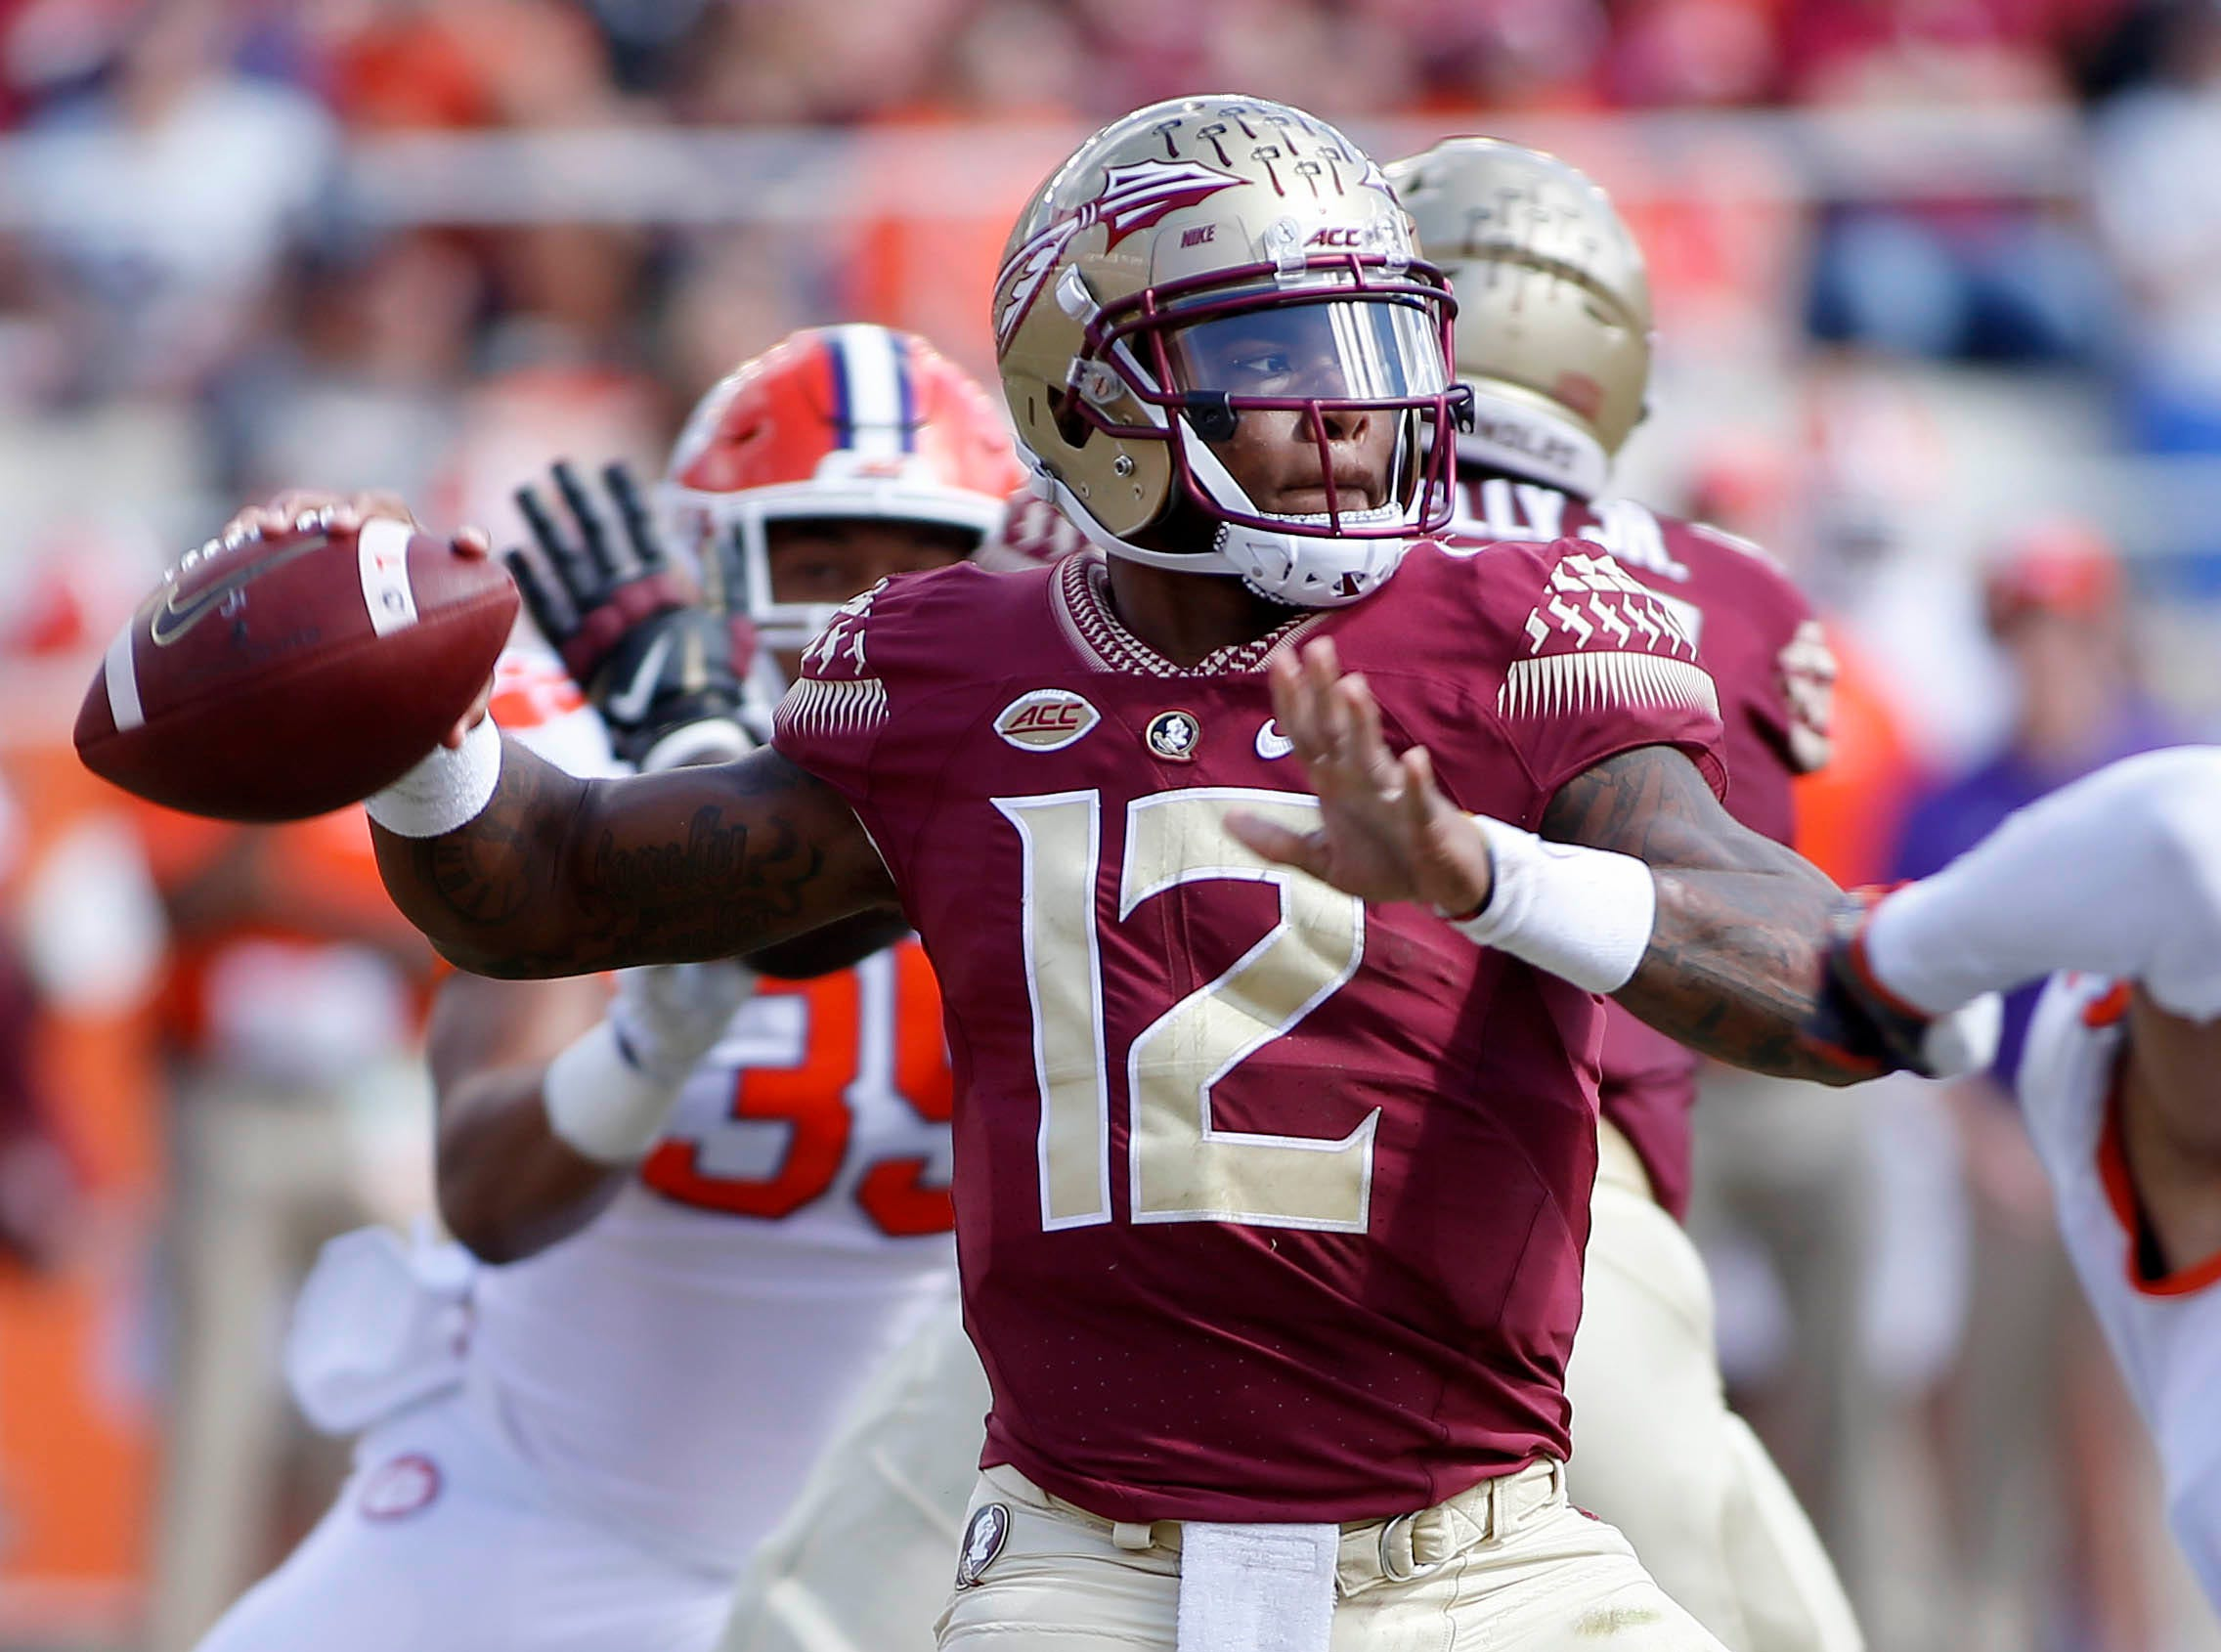 Oct 27, 2018; Tallahassee, FL, USA; Florida State Seminoles quarterback Deondre Francois (12) throws against the Clemson Tigers at Doak Campbell Stadium during the second quarter of play.